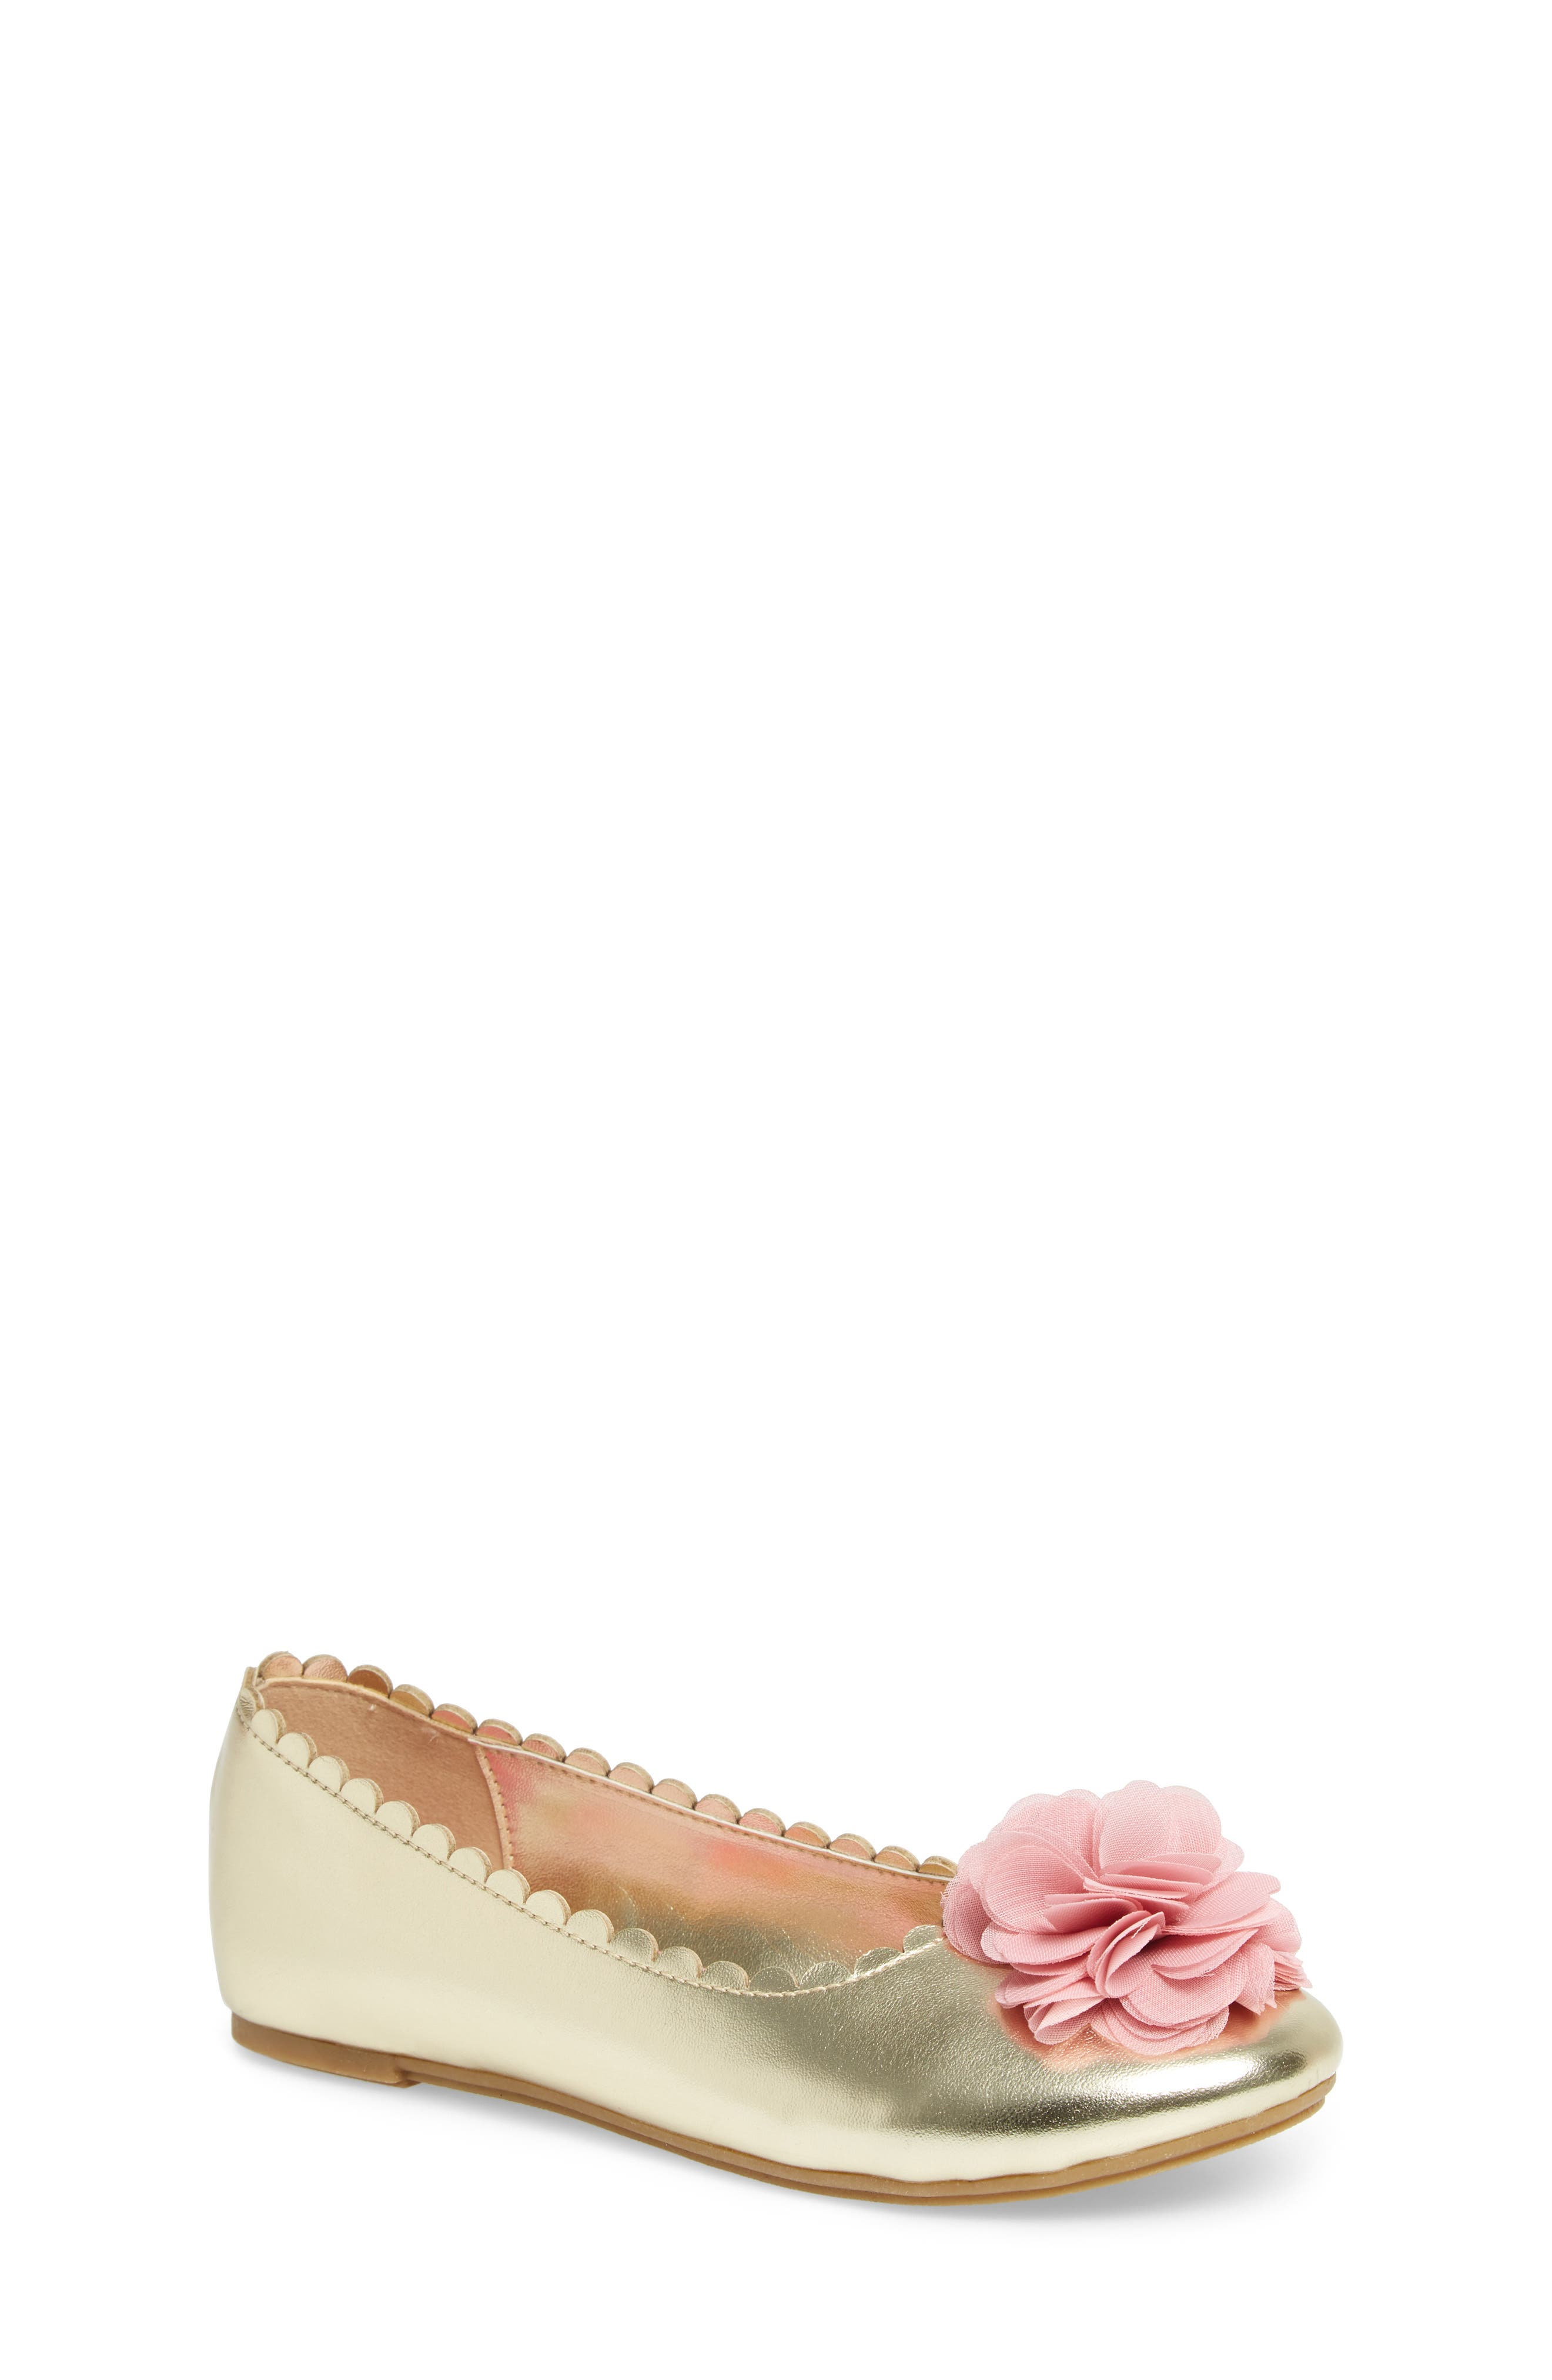 Ashlyn Flower Ballet Flat,                             Main thumbnail 1, color,                             710